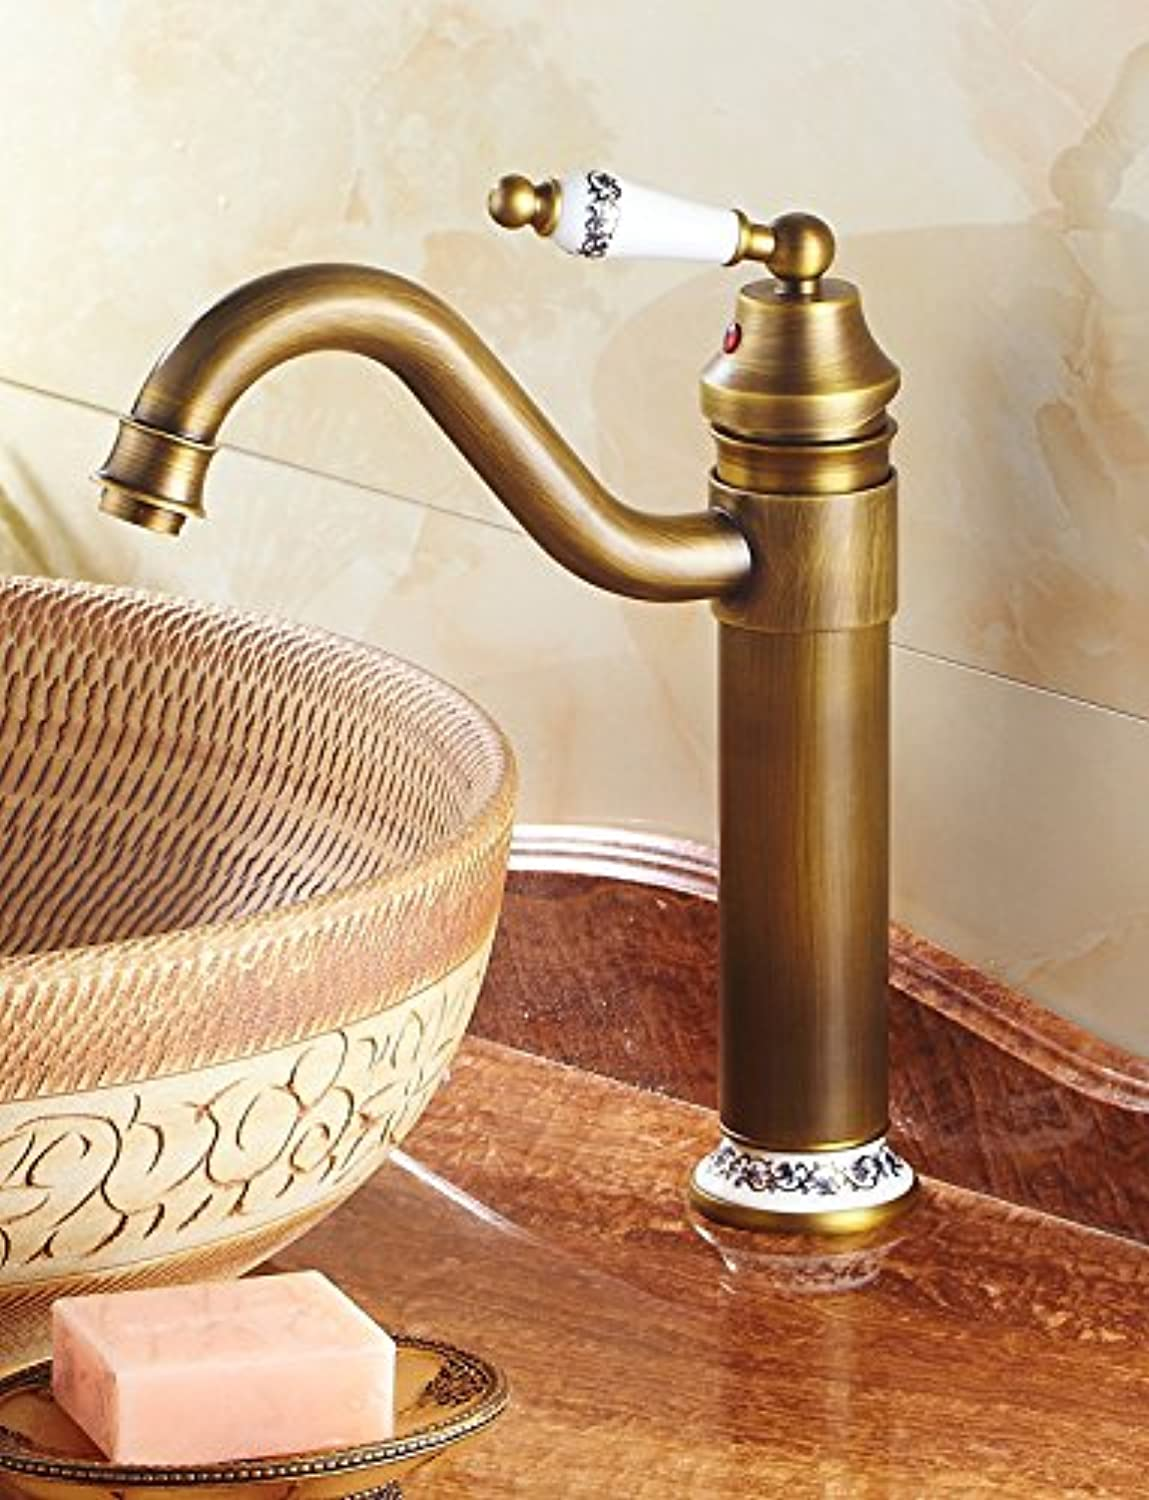 Commercial Single Lever Pull Down Kitchen Sink Faucet Brass Constructed Polished European New Antique Kitchen Above Counter Basin Faucet Single Faucet